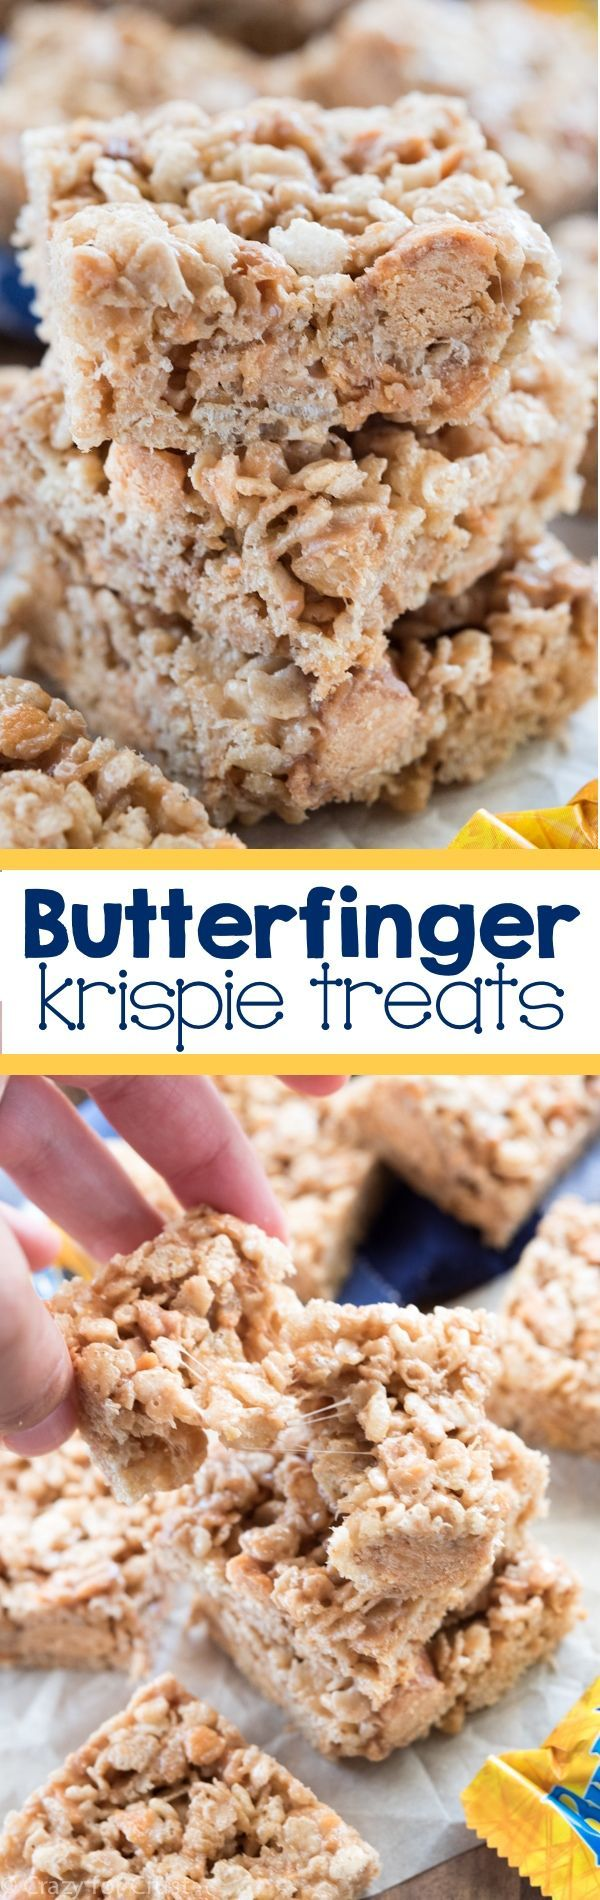 Butterfinger Krispie Treats - an easy no bake recipe with only 5 ingredients! They're full of Butterfingers too! This is my favorite rice krispies treat recipe ever!